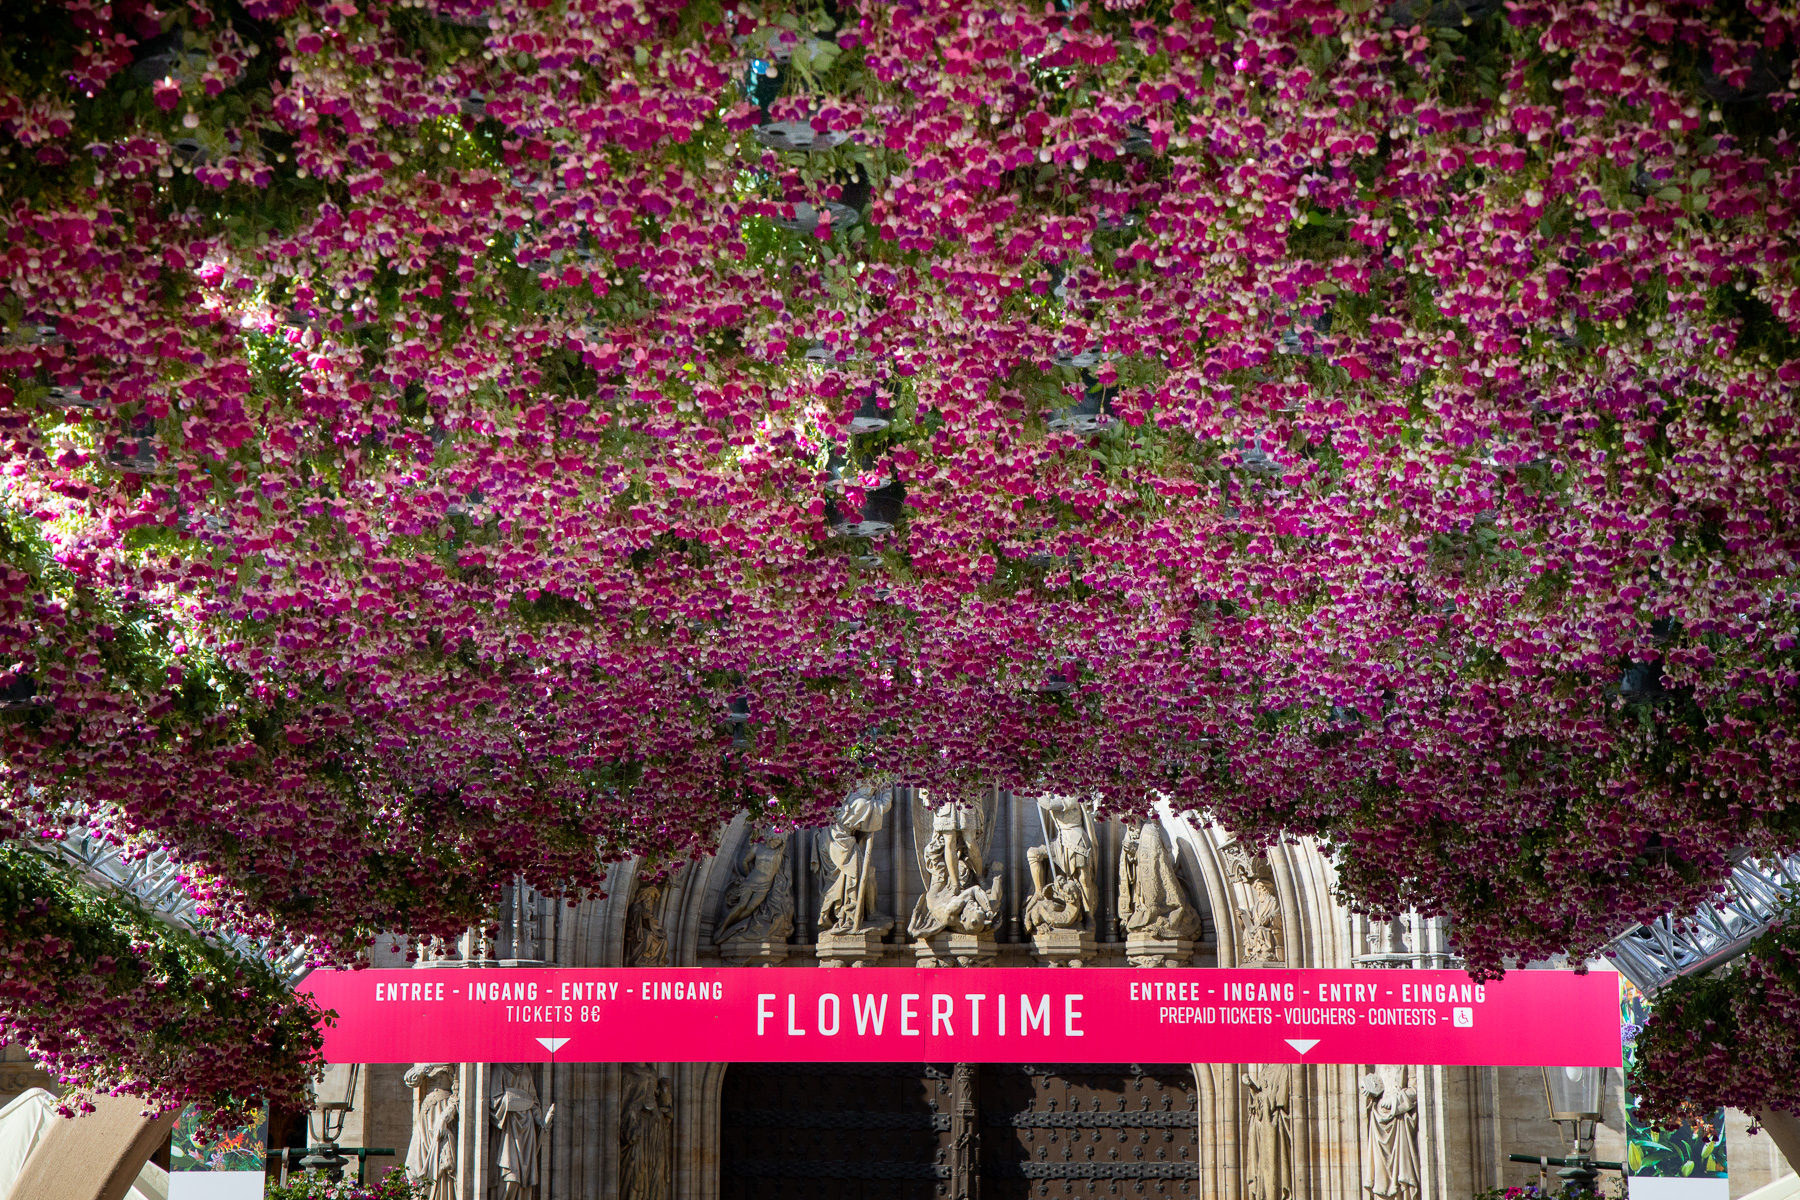 Flowertime: Brussels Town Hall becomes a Garden of Eden